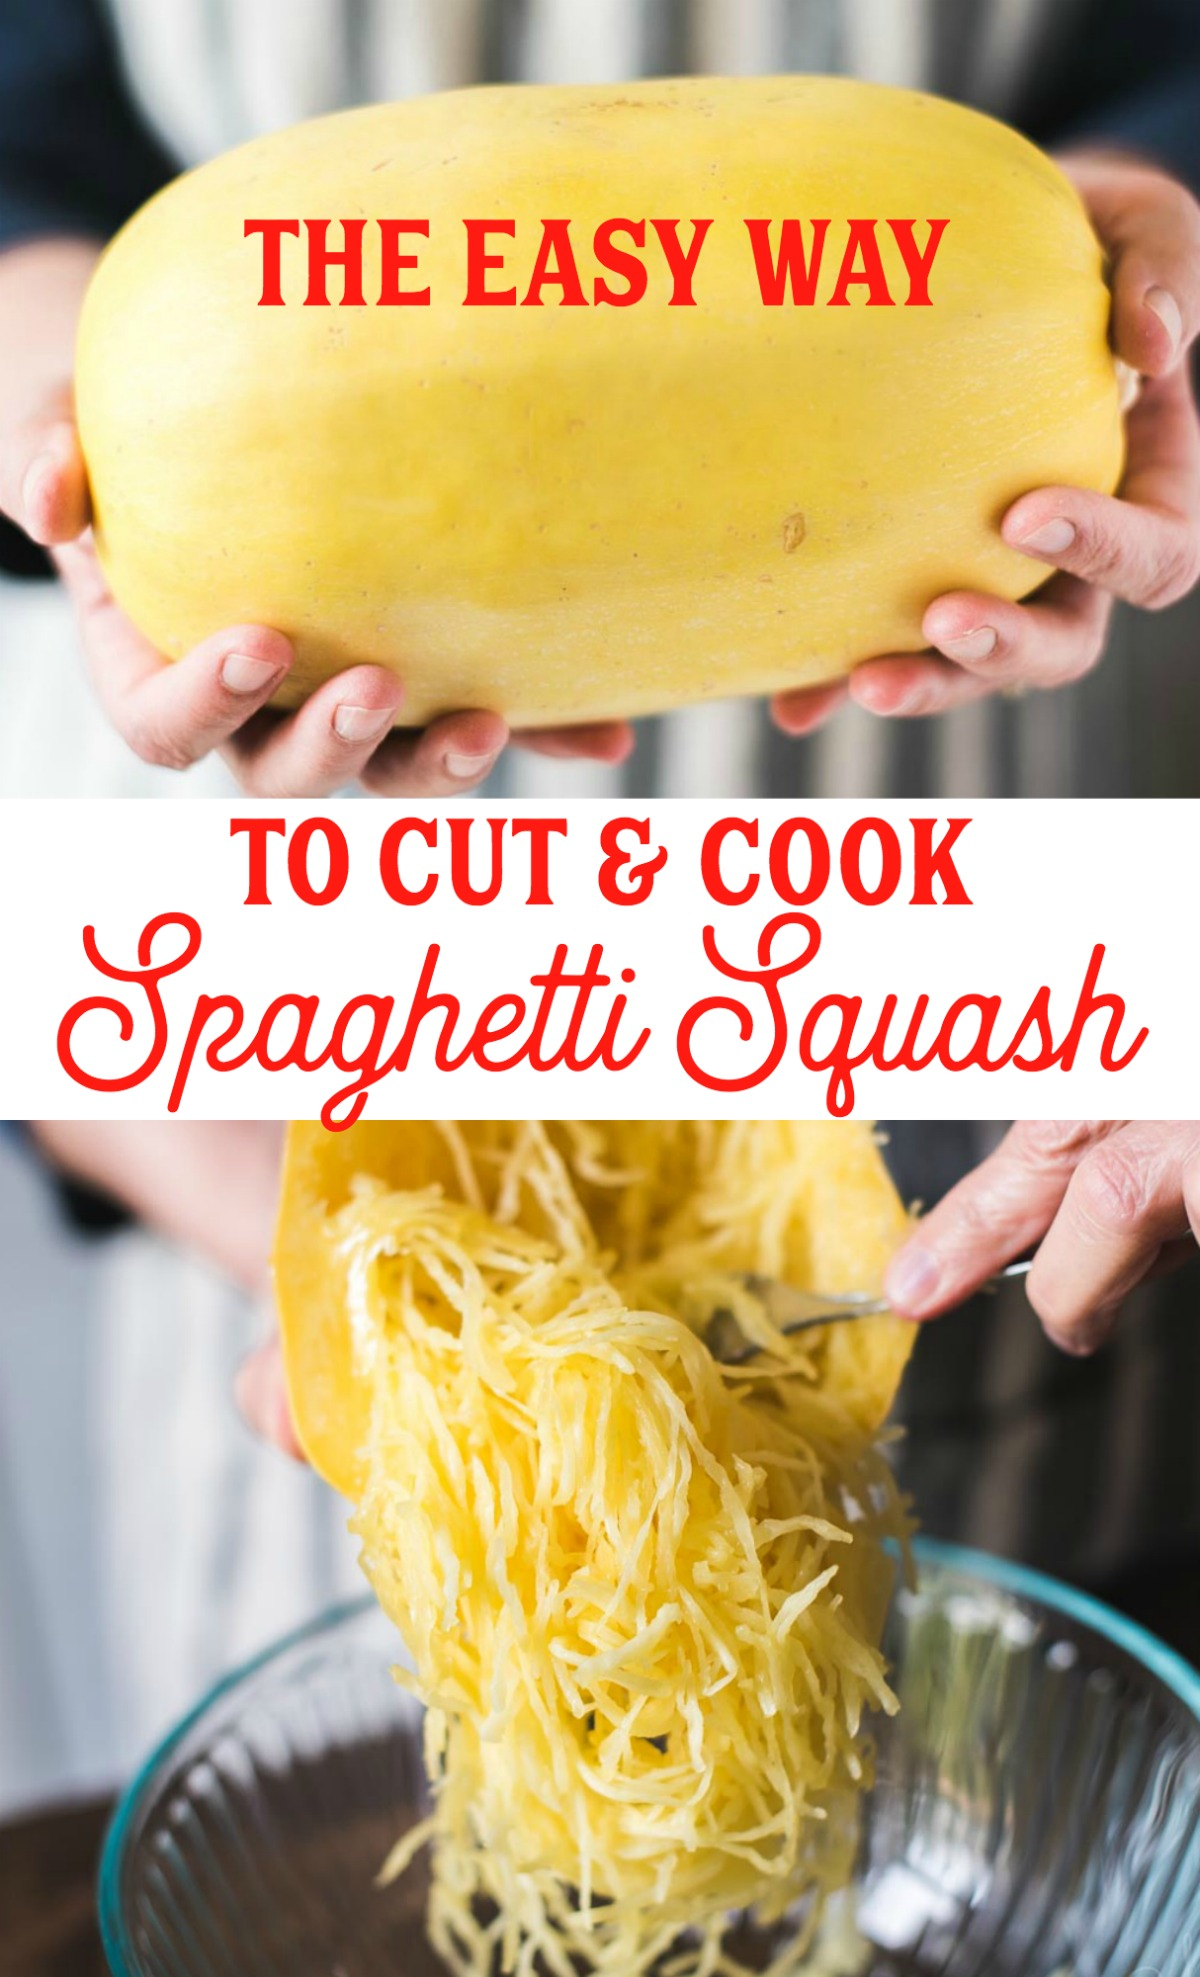 How to cut and cook spaghetti squash.